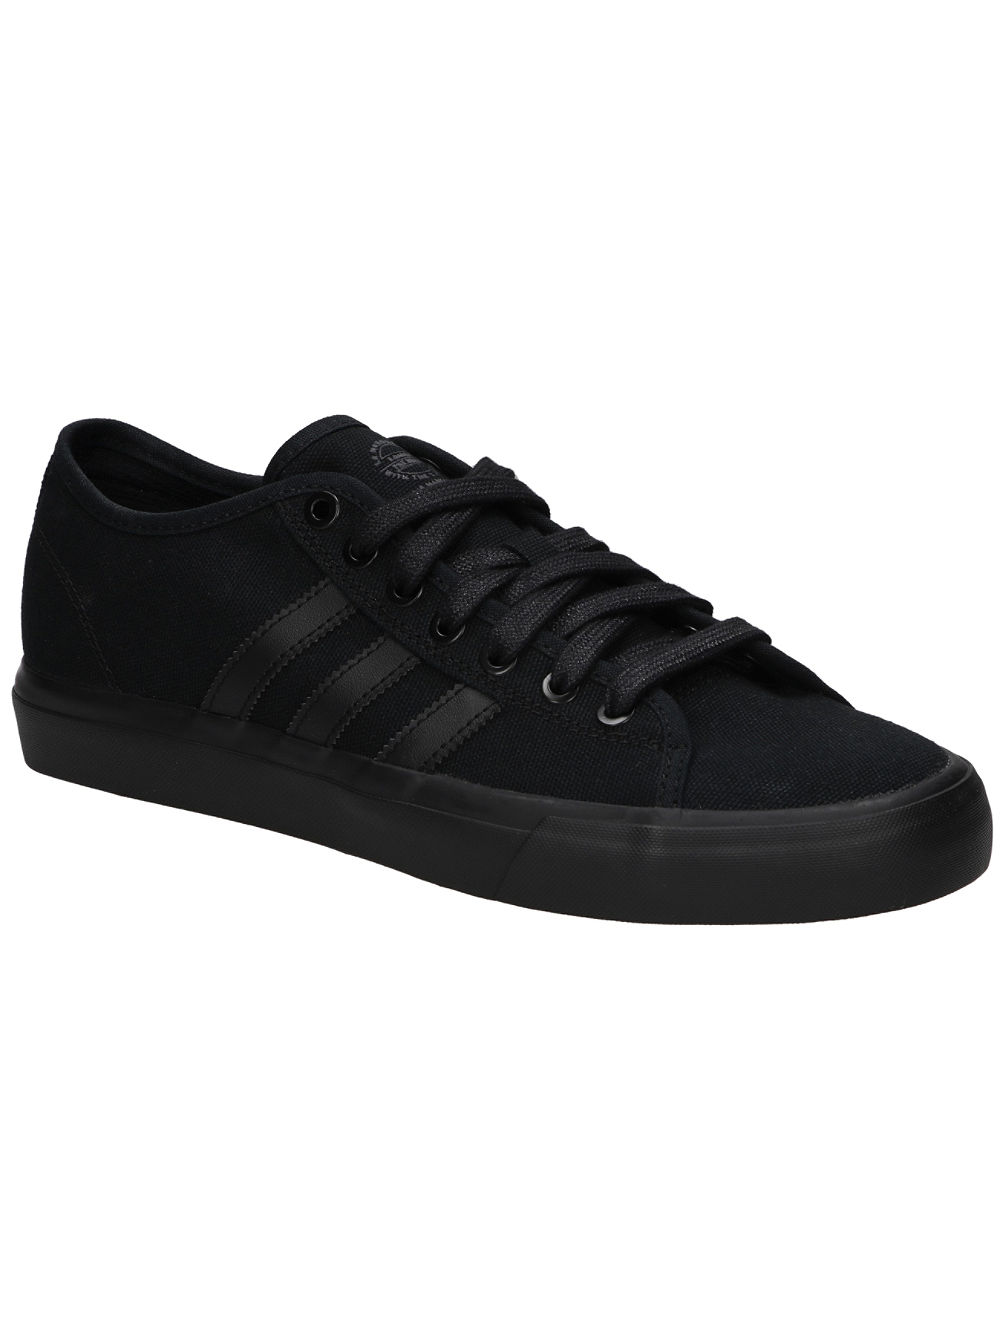 fa2f72f33 Buy adidas Skateboarding Matchcourt RX Skate Shoes online at Blue Tomato